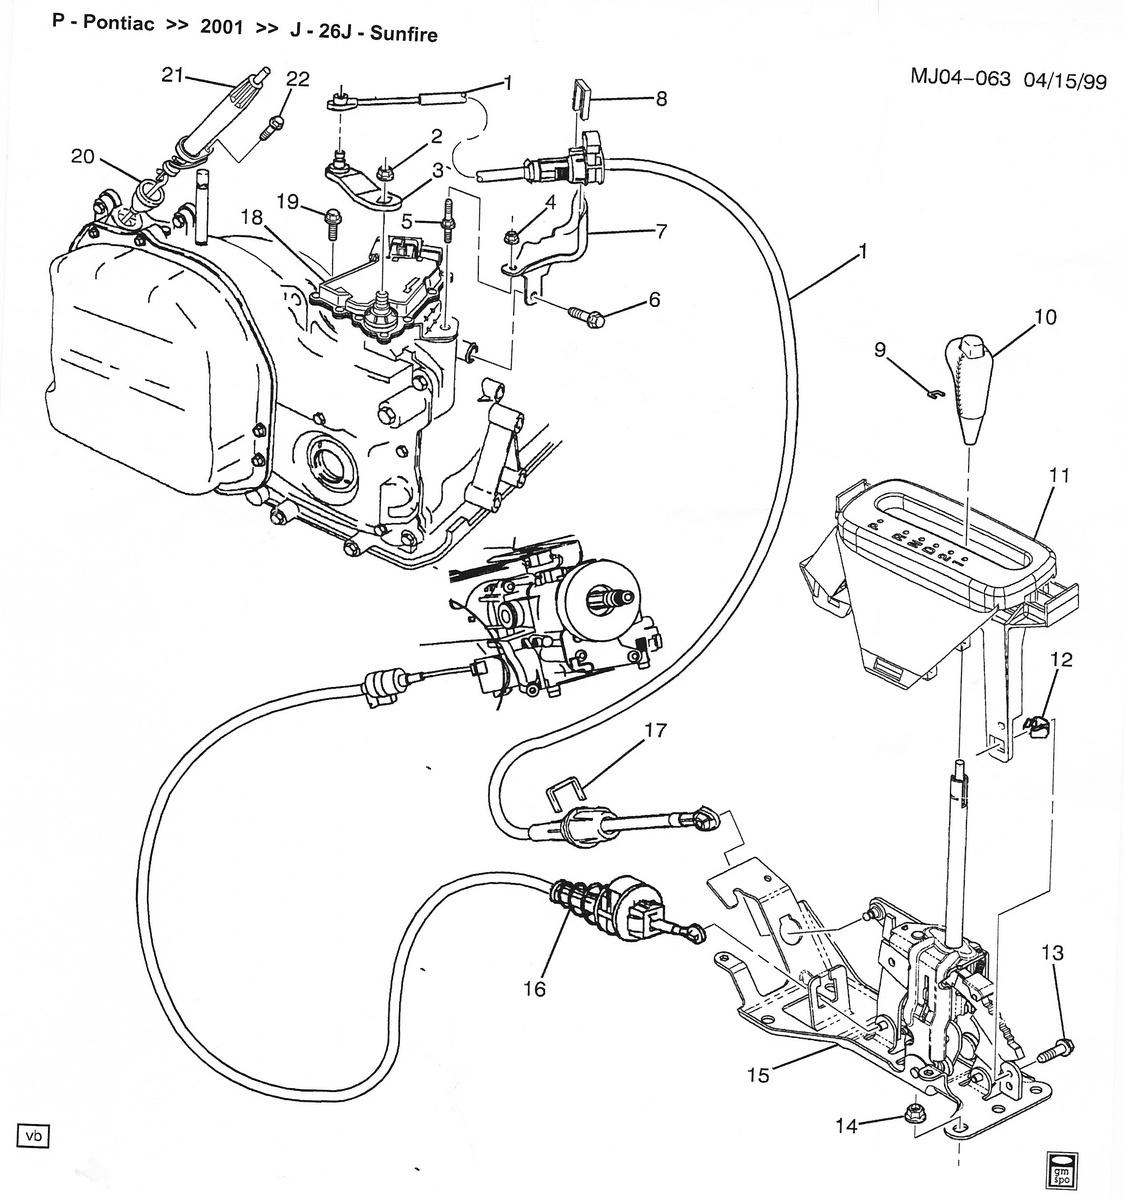 01 Mustang Shifter Cable Location Diagram on Honda Civic Fuel Line Diagram On Chevy Cavalier